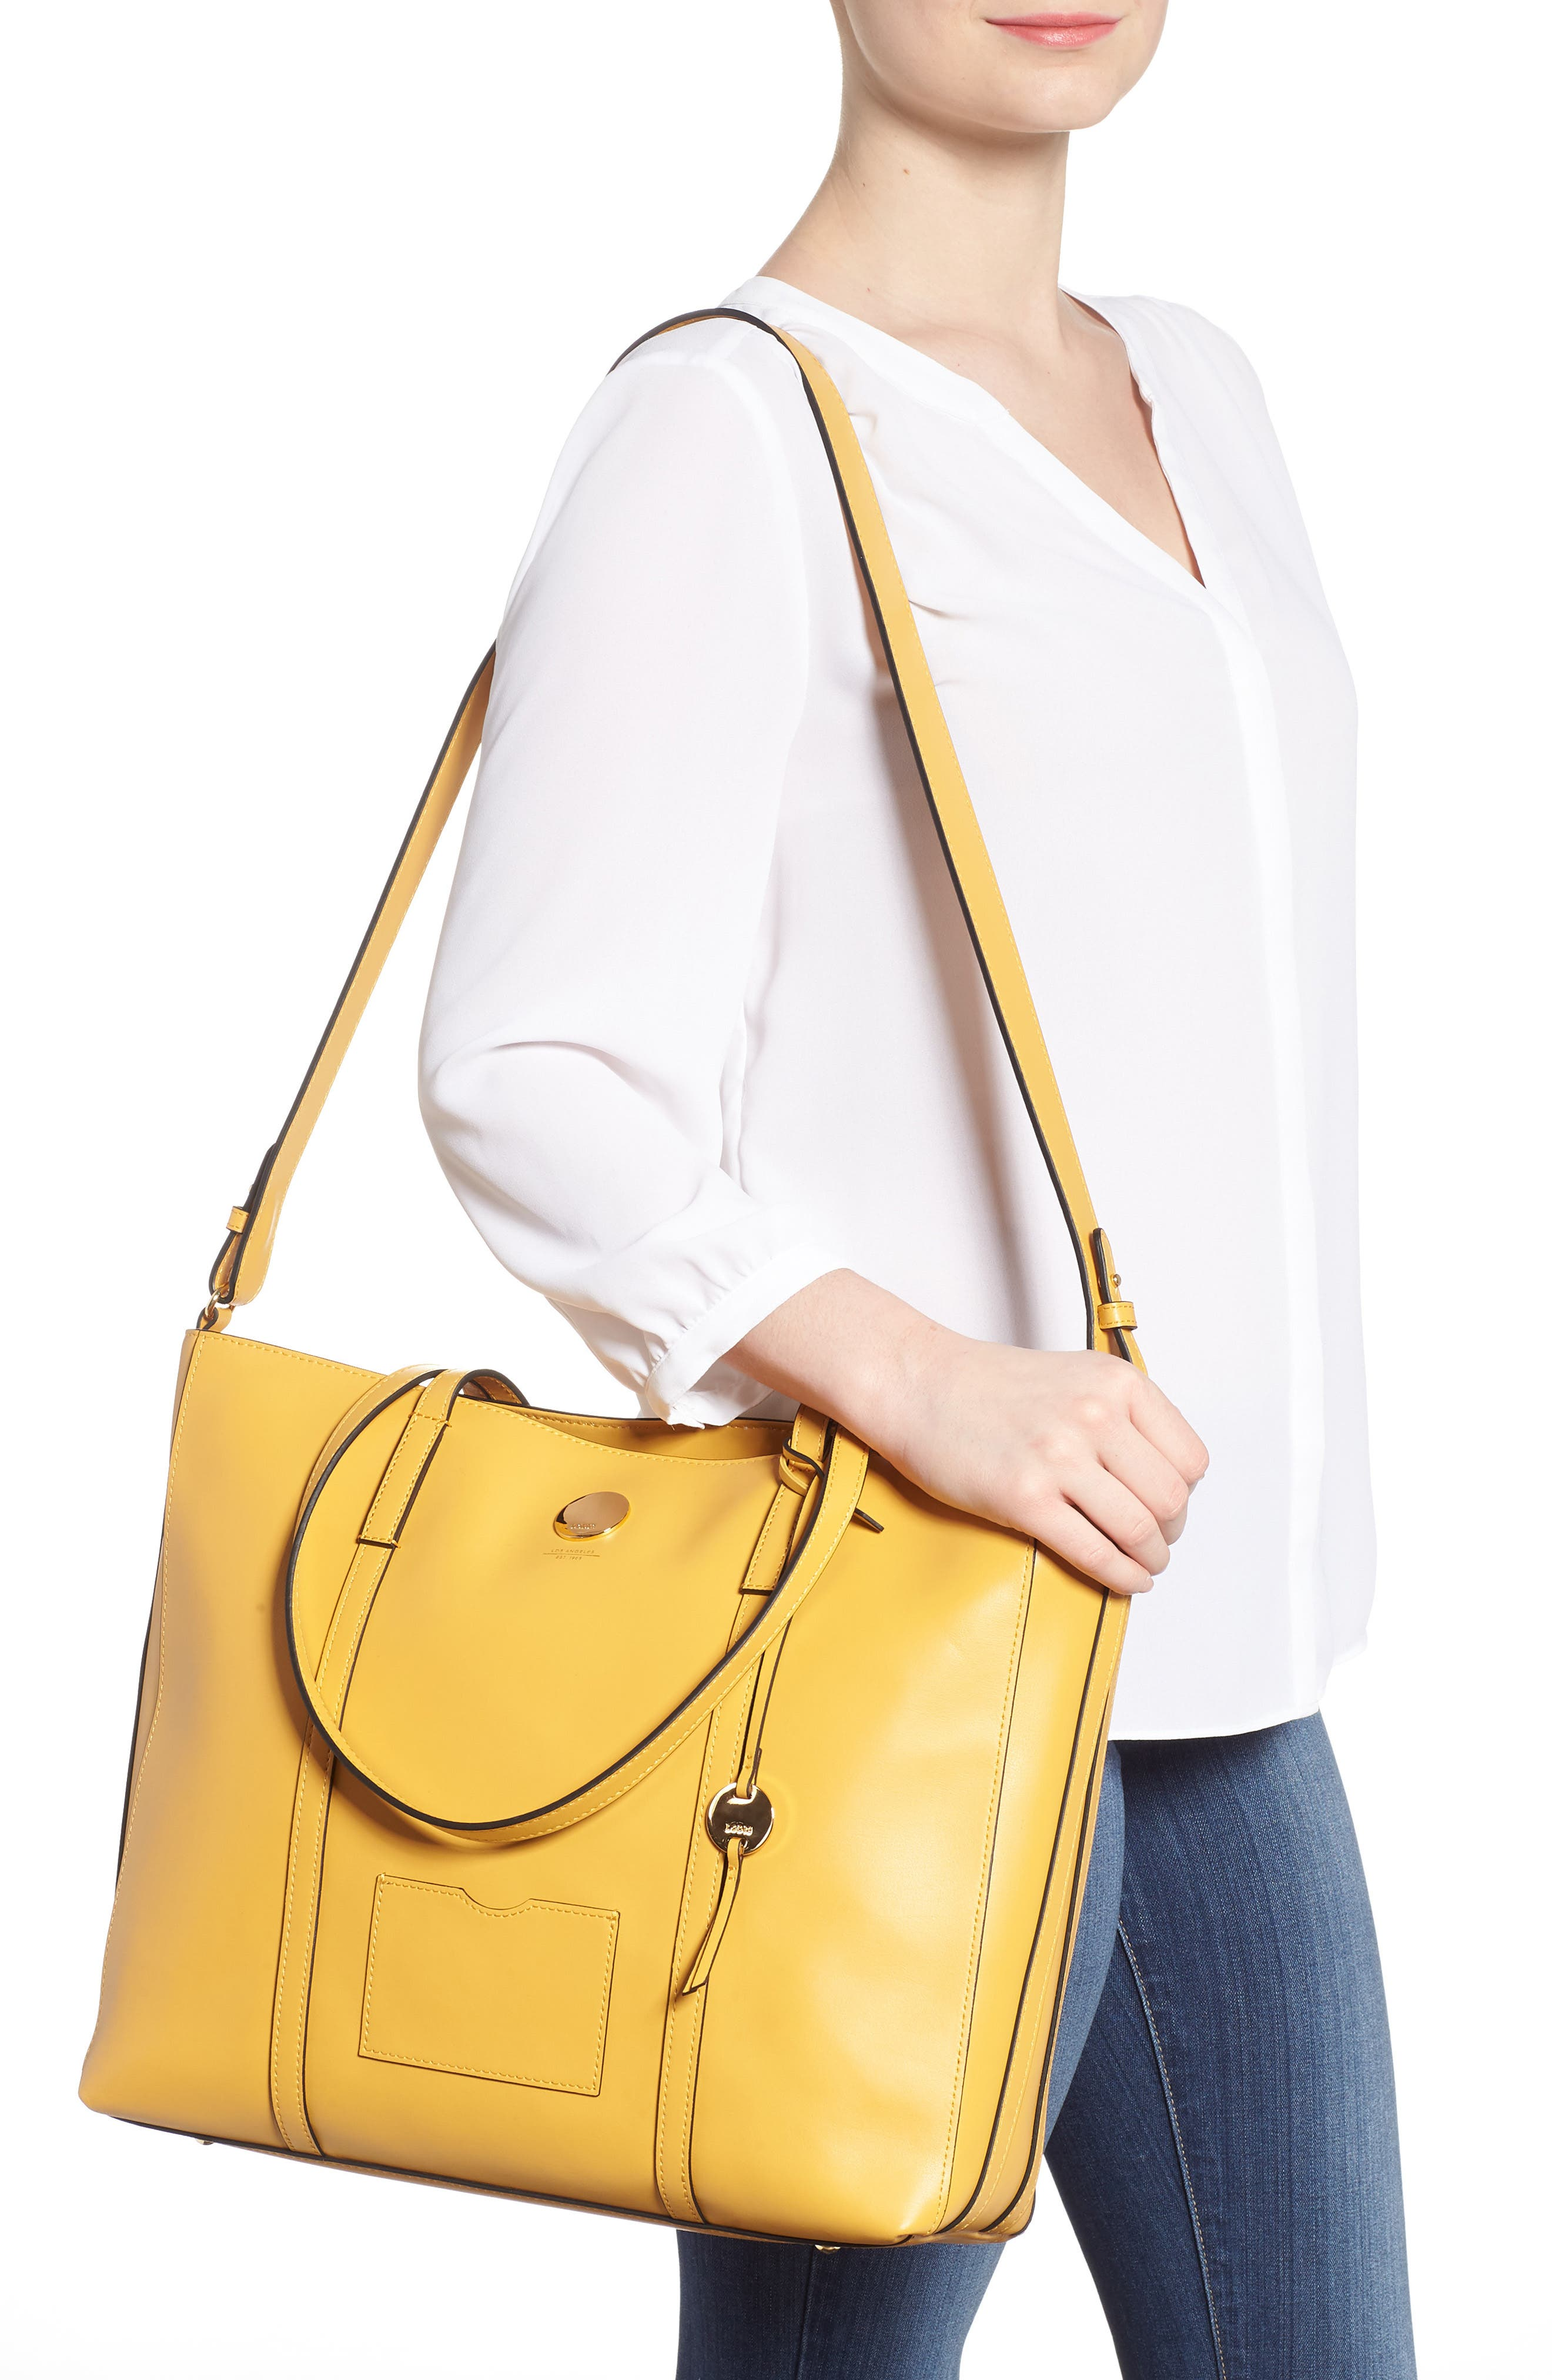 Nelly RFID Medium Leather Tote,                             Alternate thumbnail 2, color,                             Yellow